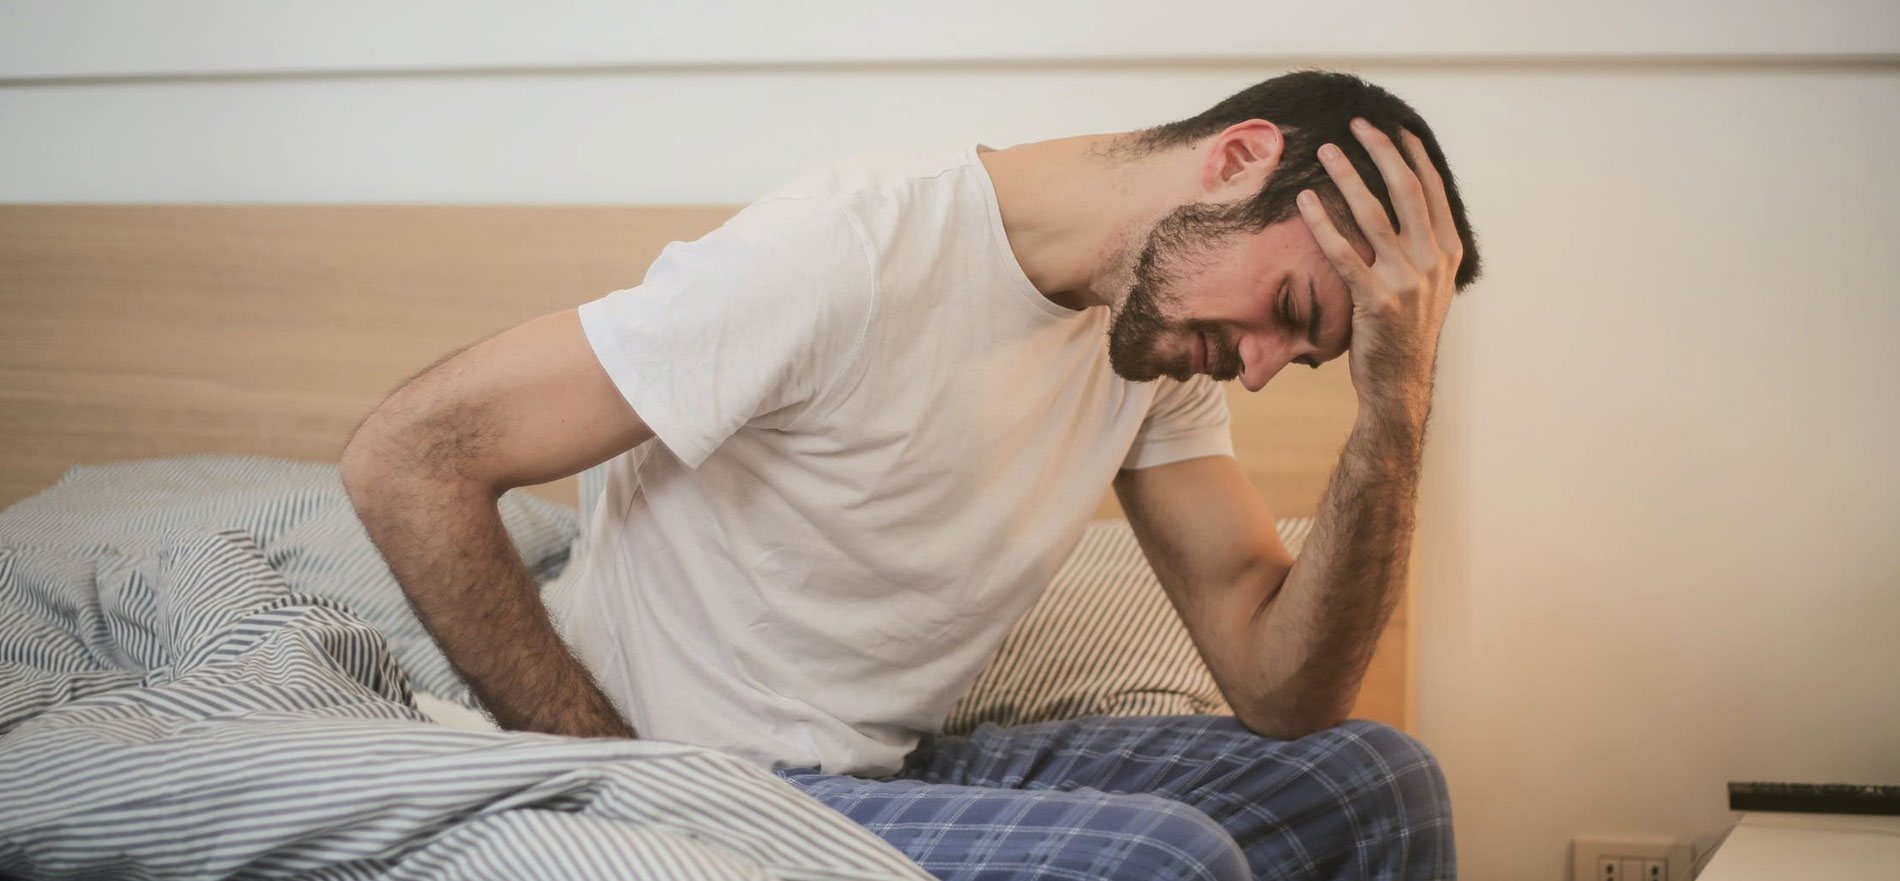 young man sitting in bed, holding head in hand because of shoulder discomfort